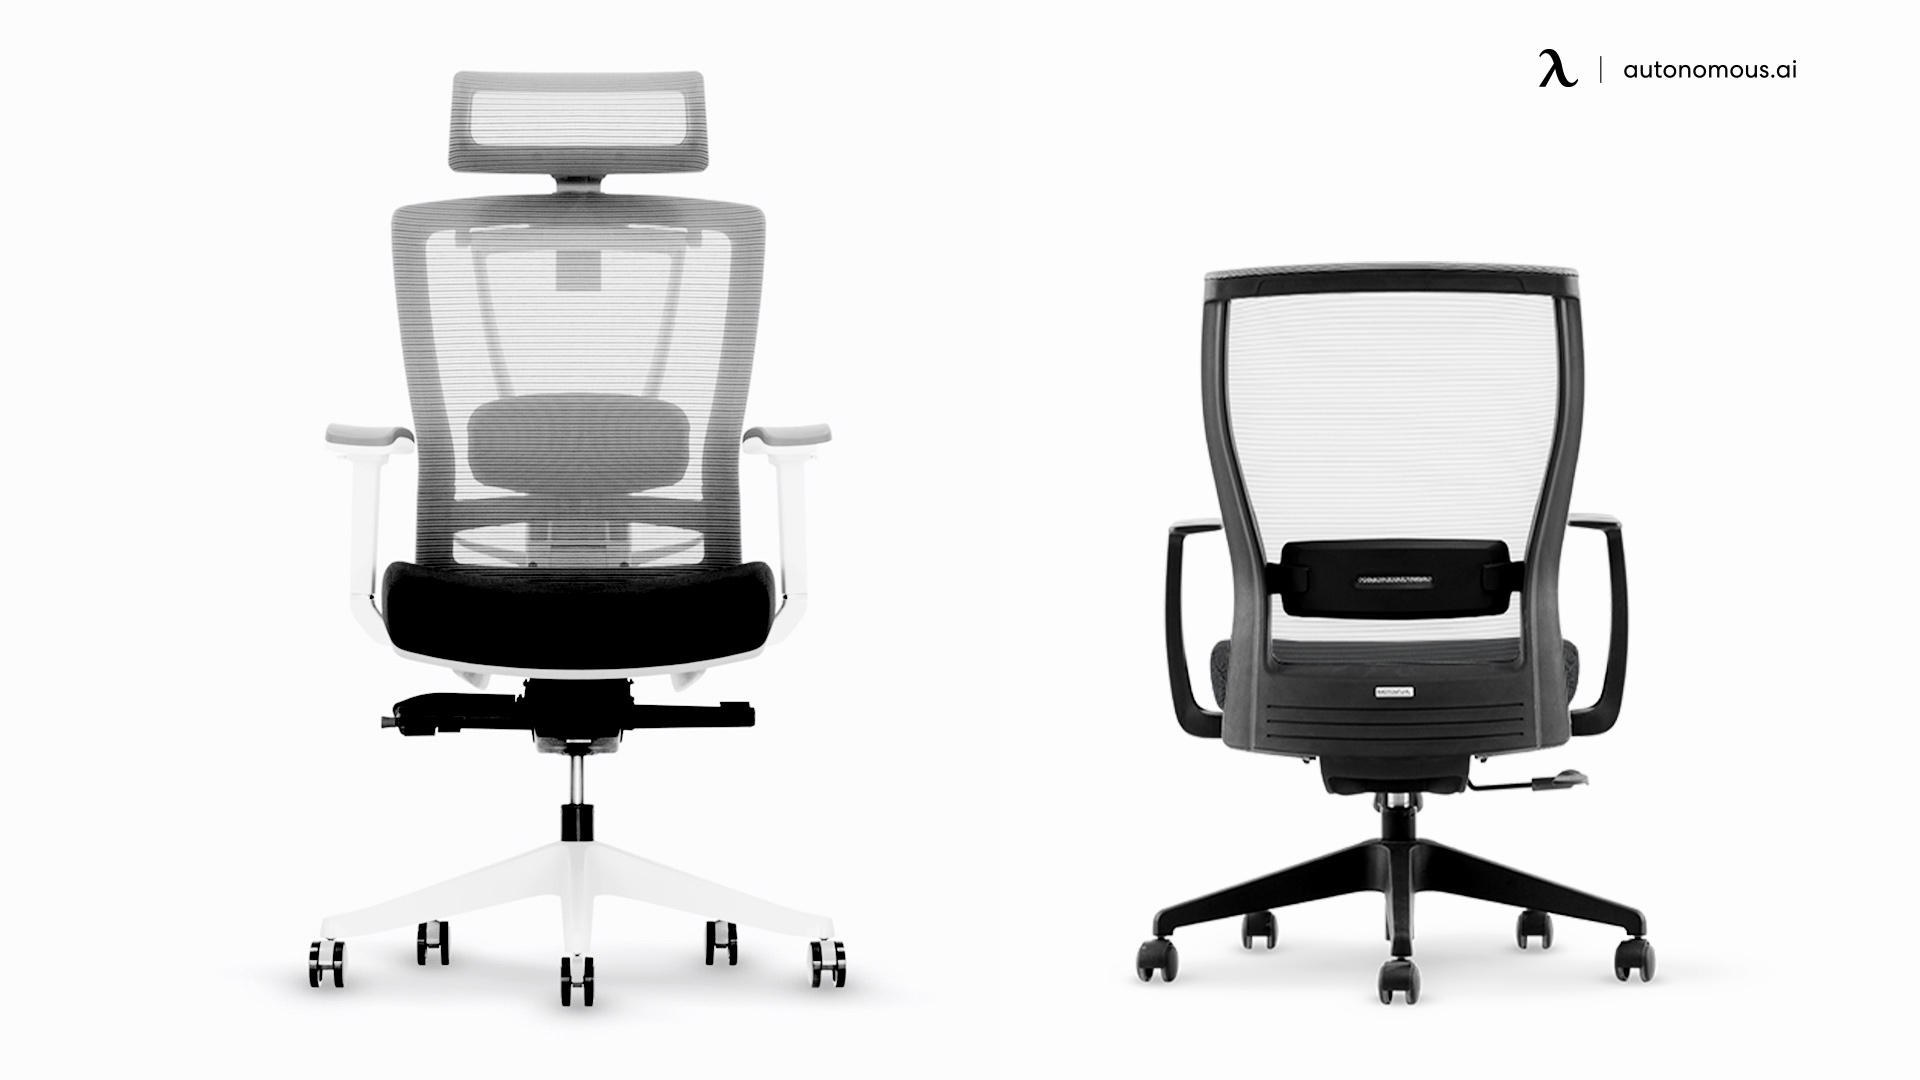 Chairs with Headrest vs. Chairs with No Headrest